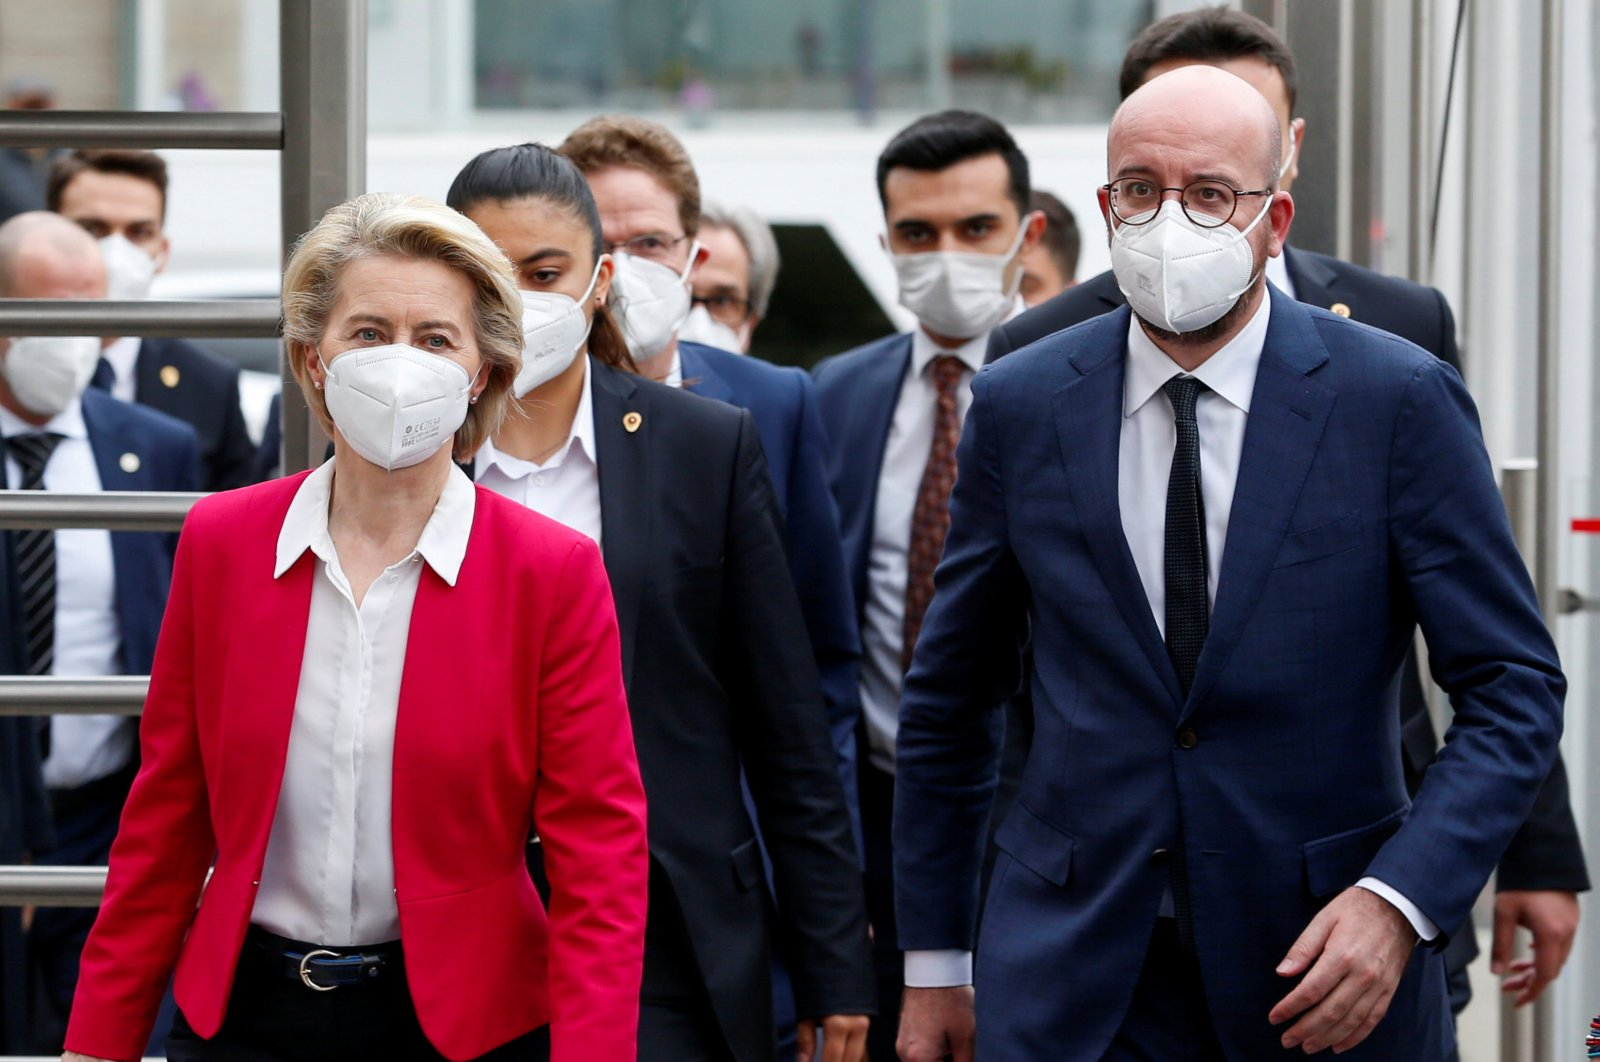 European Commission President Ursula von der Leyen (L) and European Council President Charles Michel arrive at a news conference after their meeting with Turkish President Recep Tayyip Erdoğan in Ankara, Turkey, April 6, 2021. (Reuters Photo)